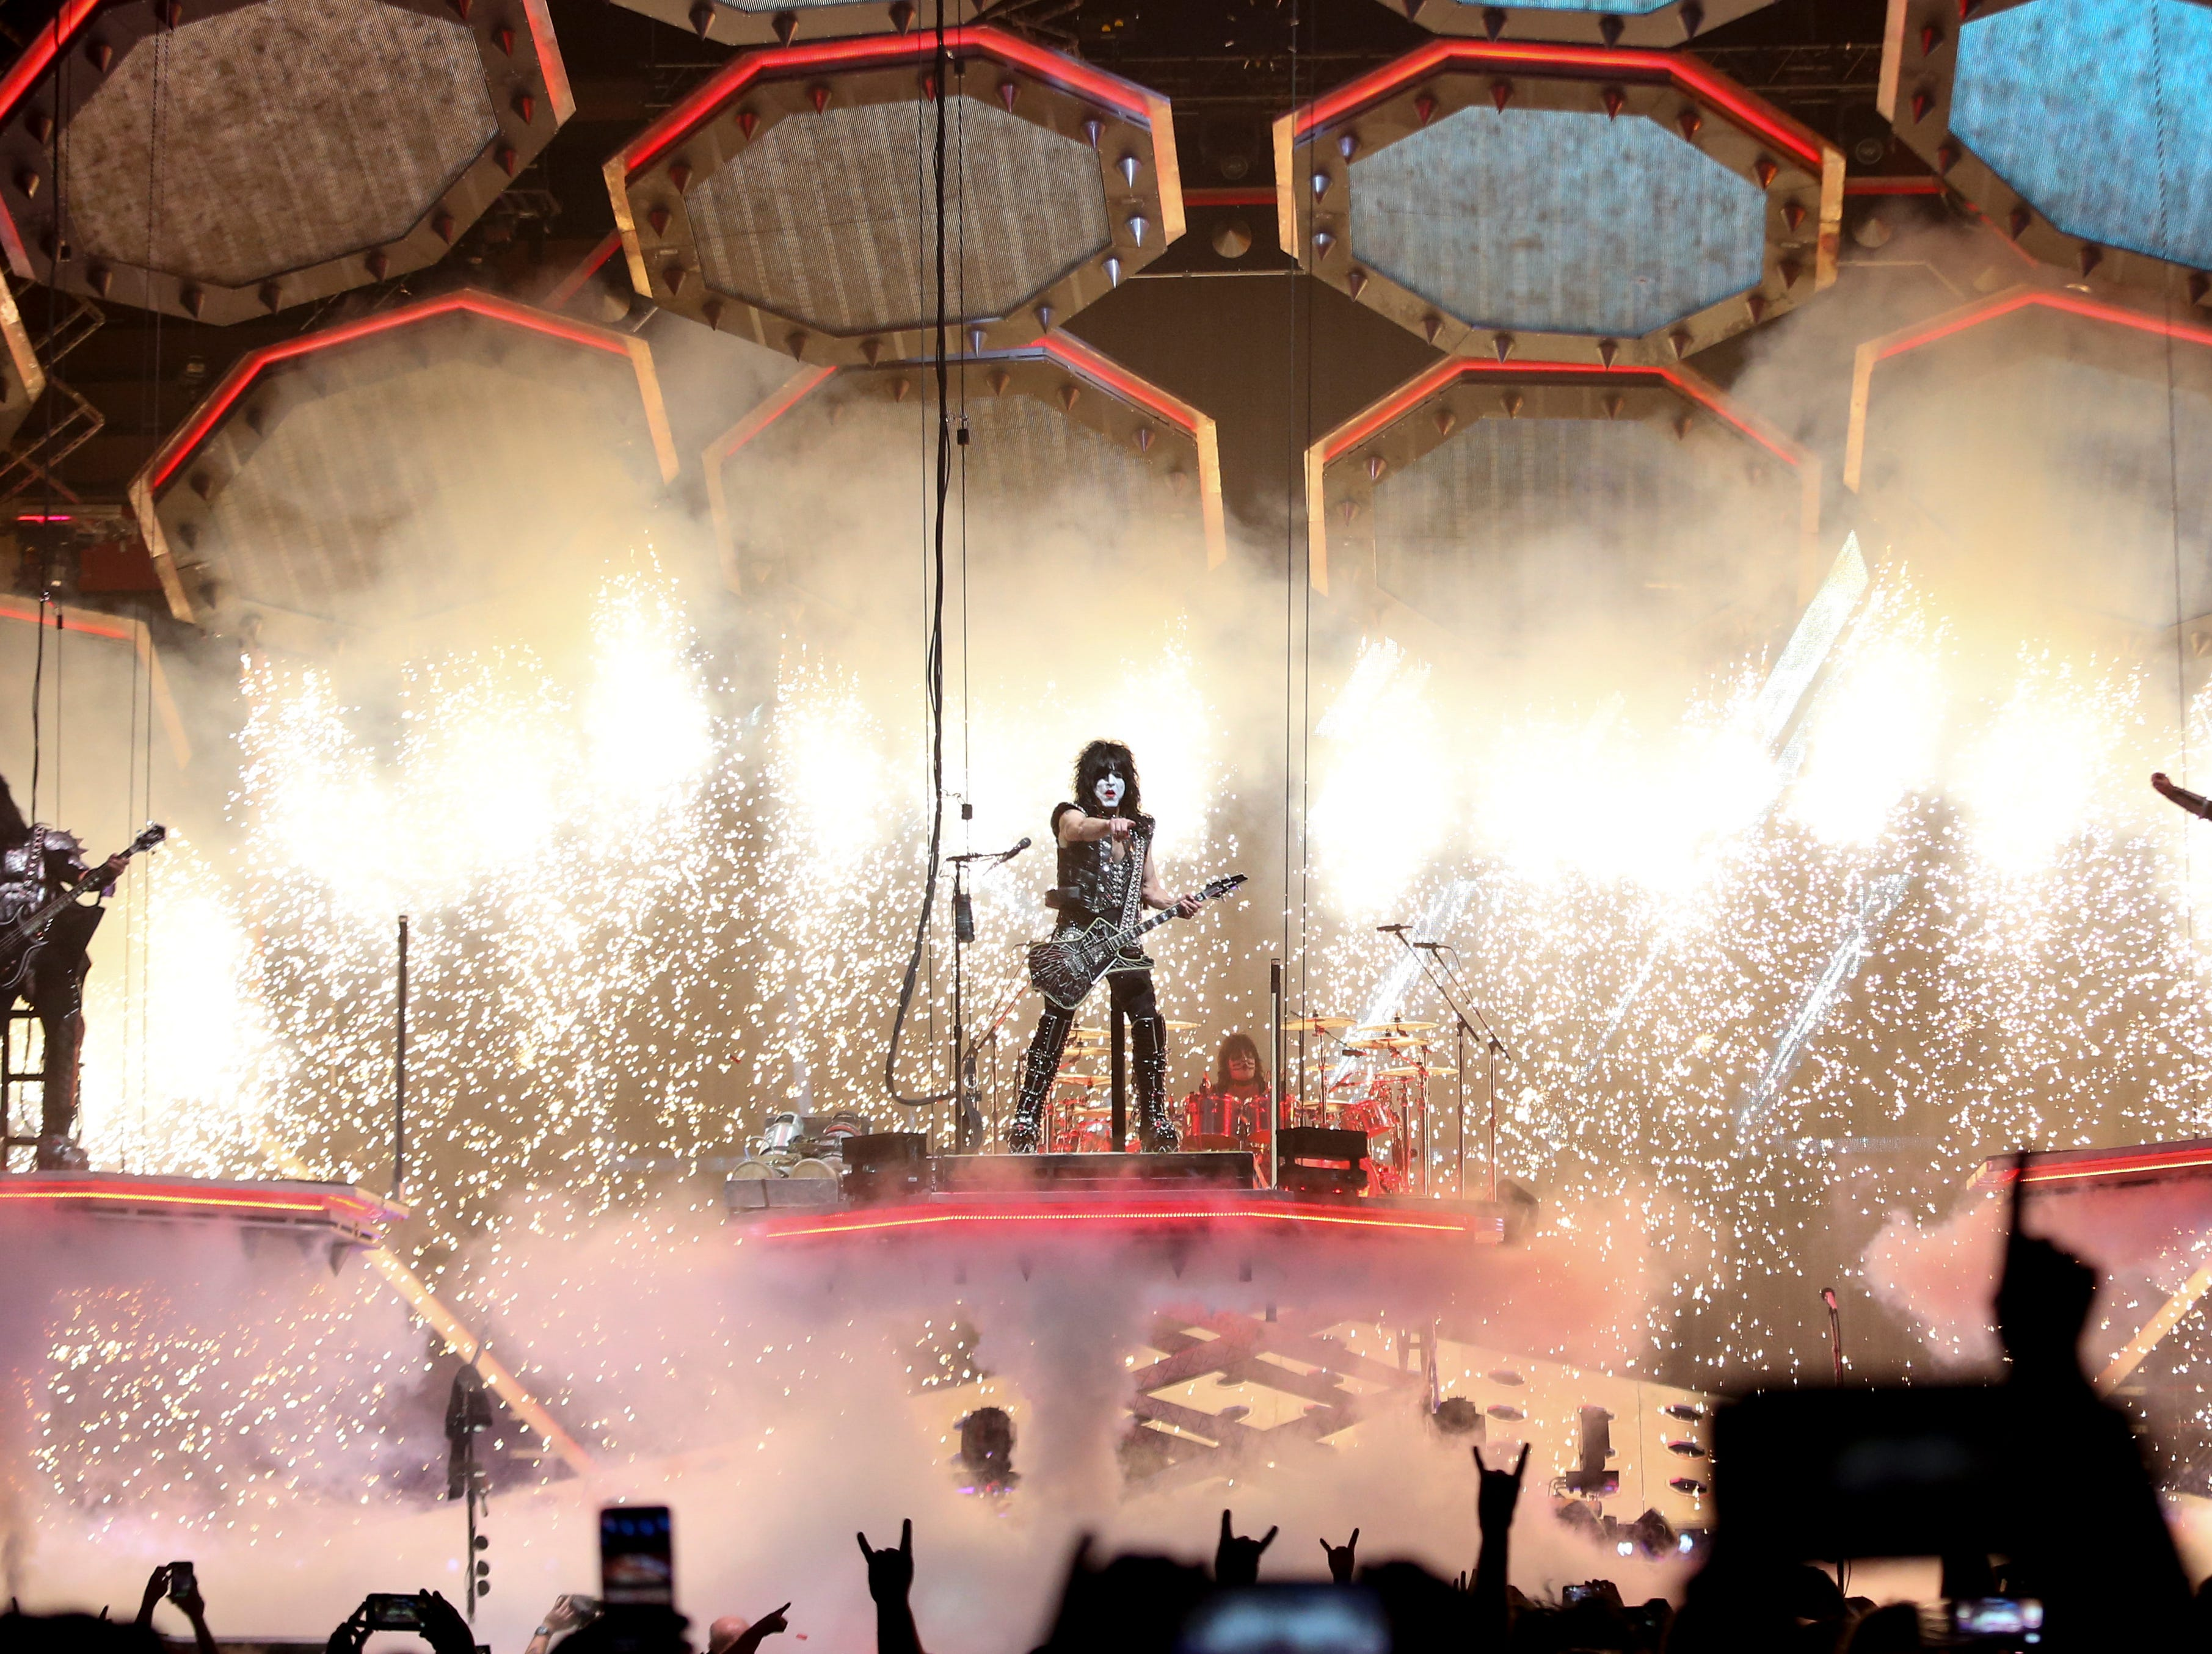 Gene Simmons, Paul Stanley and Tommy Thayer of KISS are lowered to the stage at the KFC Yum Center on March 12.